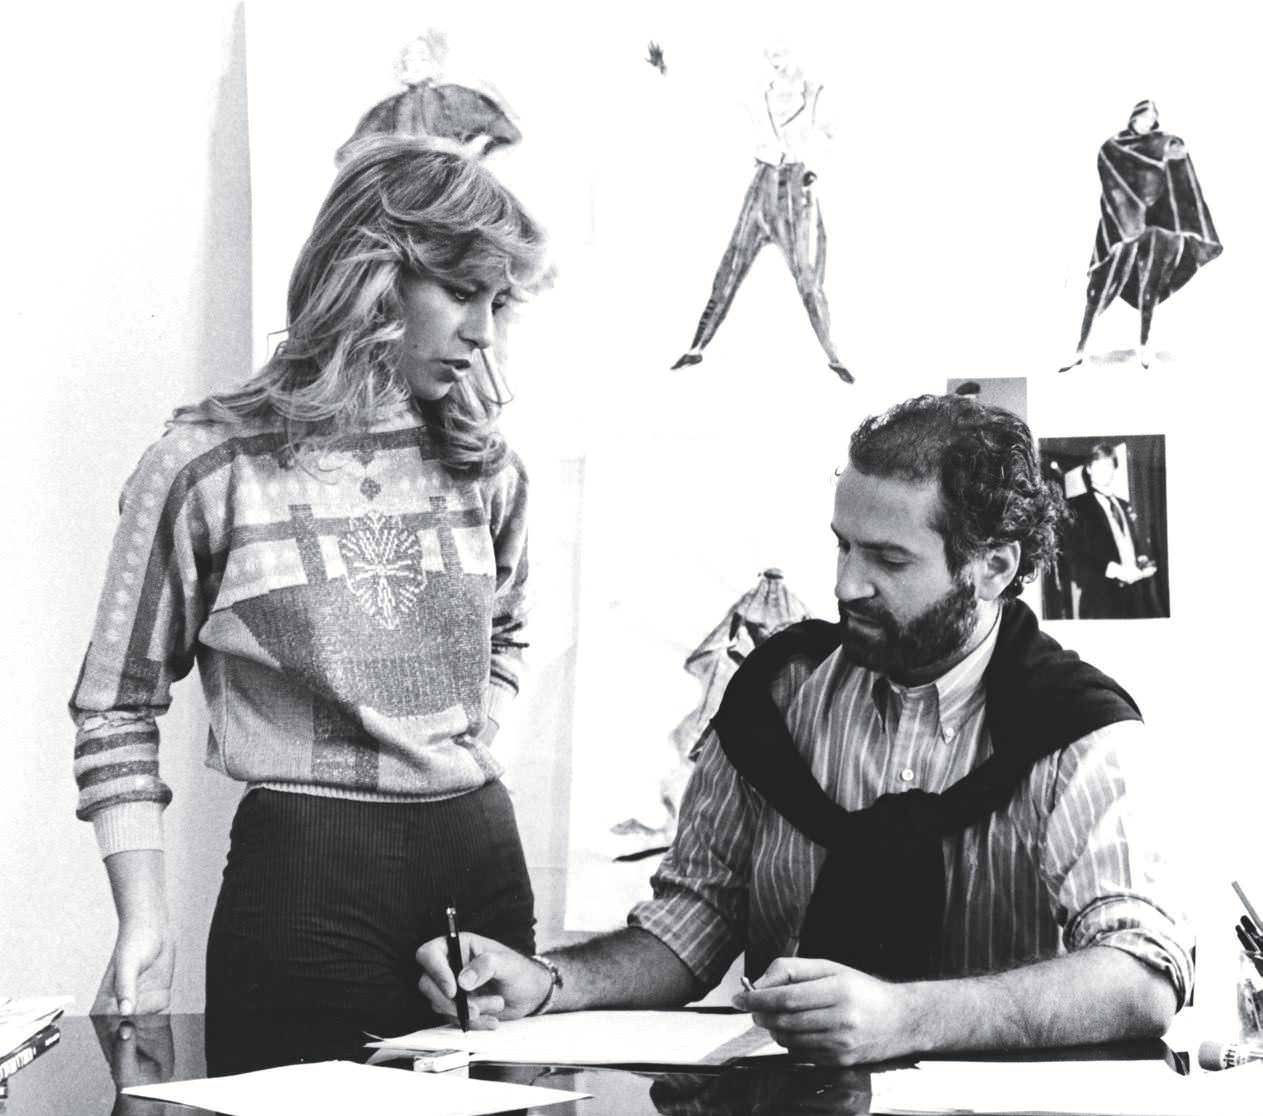 Gianni Versace – 6 Interesting Facts